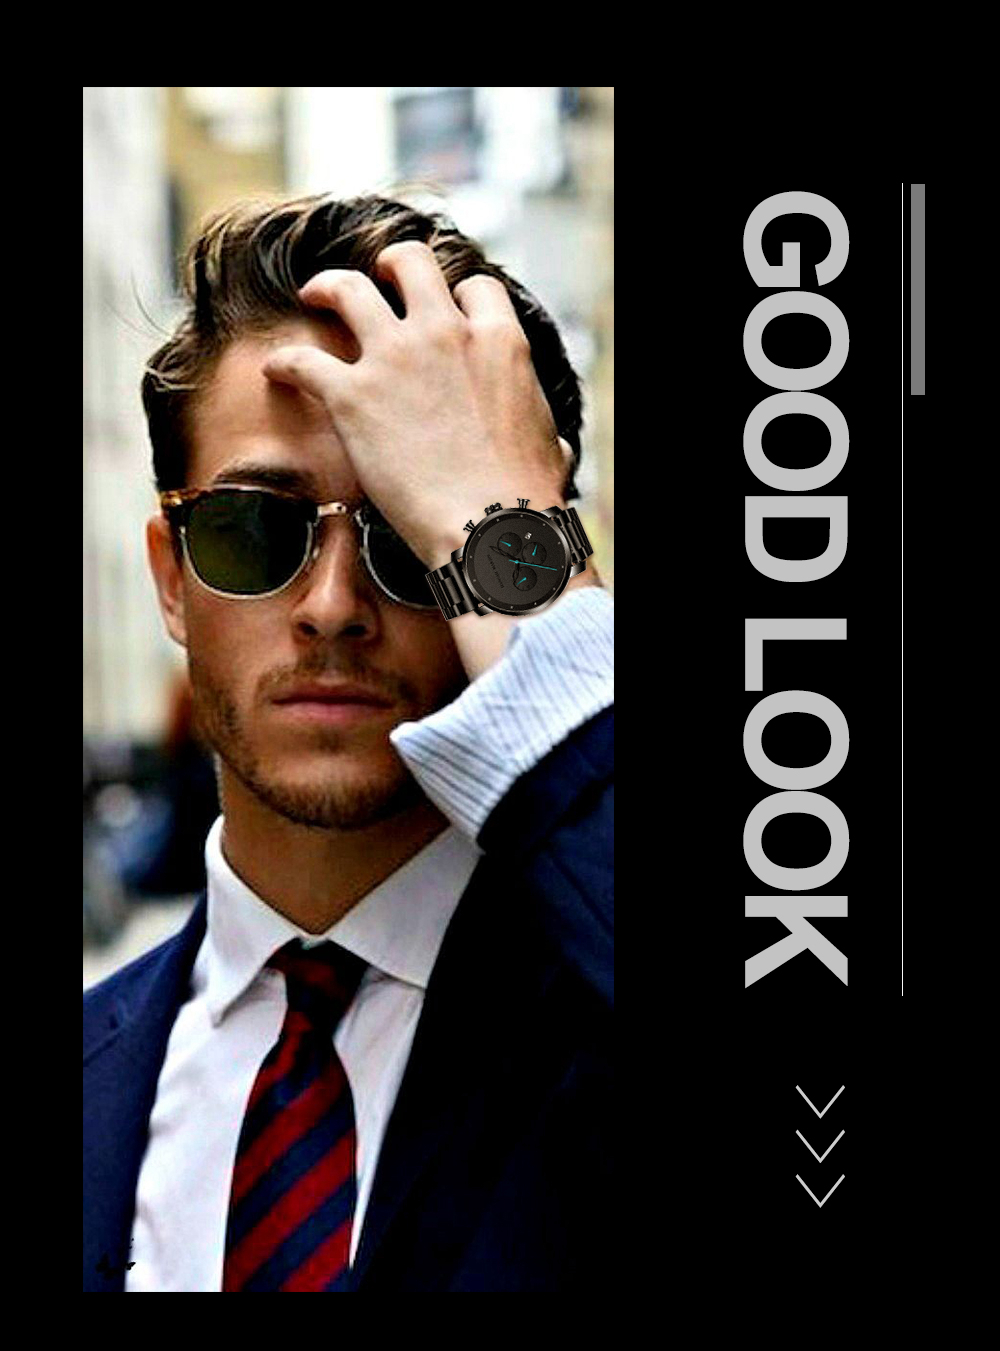 He898285199d7432e939fb94f5a5874ecp DropShipping Big Dial 45mm Full Black Stainless Steel Multi-function Calendar Men's Top Brand Luxury Watches Relogio Masculino